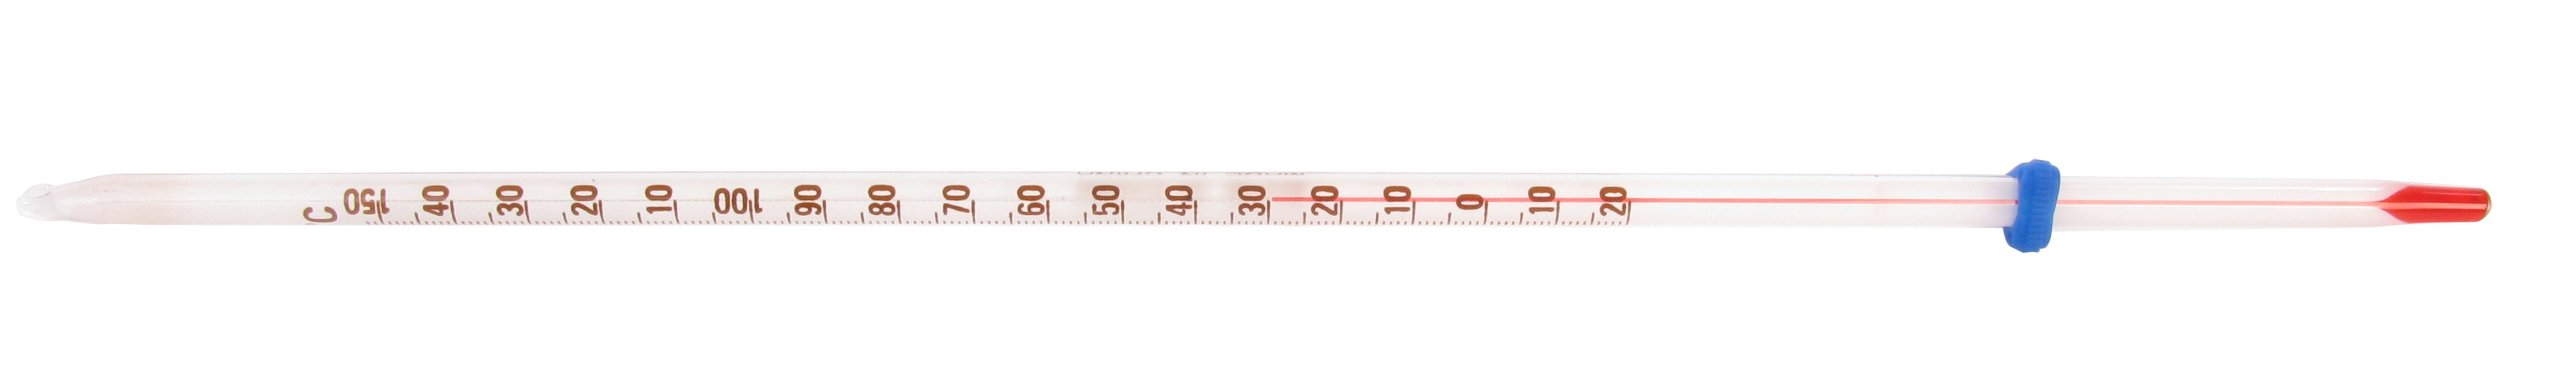 American Educational Partial Immersion Red Alcohol Single Scale Thermometer with White Back, 76mm Immersion, -20 - 150 Degree C, 300mm Length (Bundle of 5)